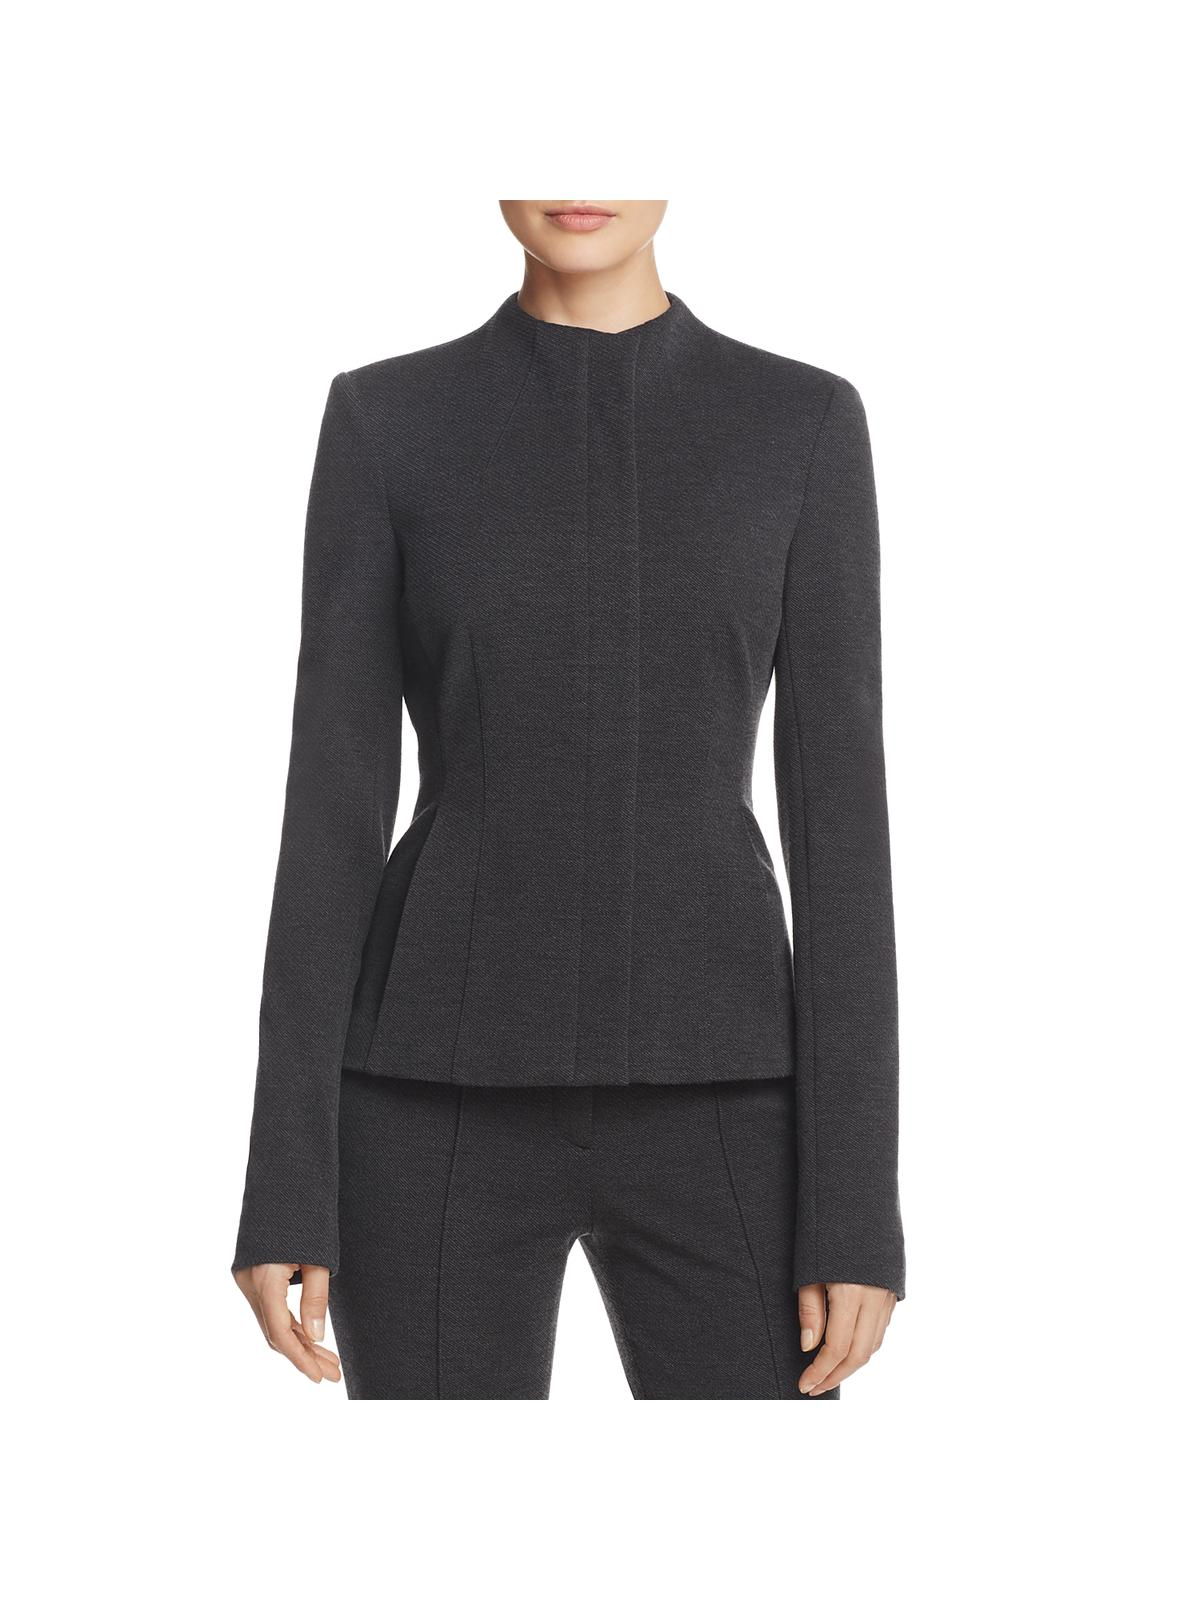 Theory Womens Knit Sculpted Basic Jacket